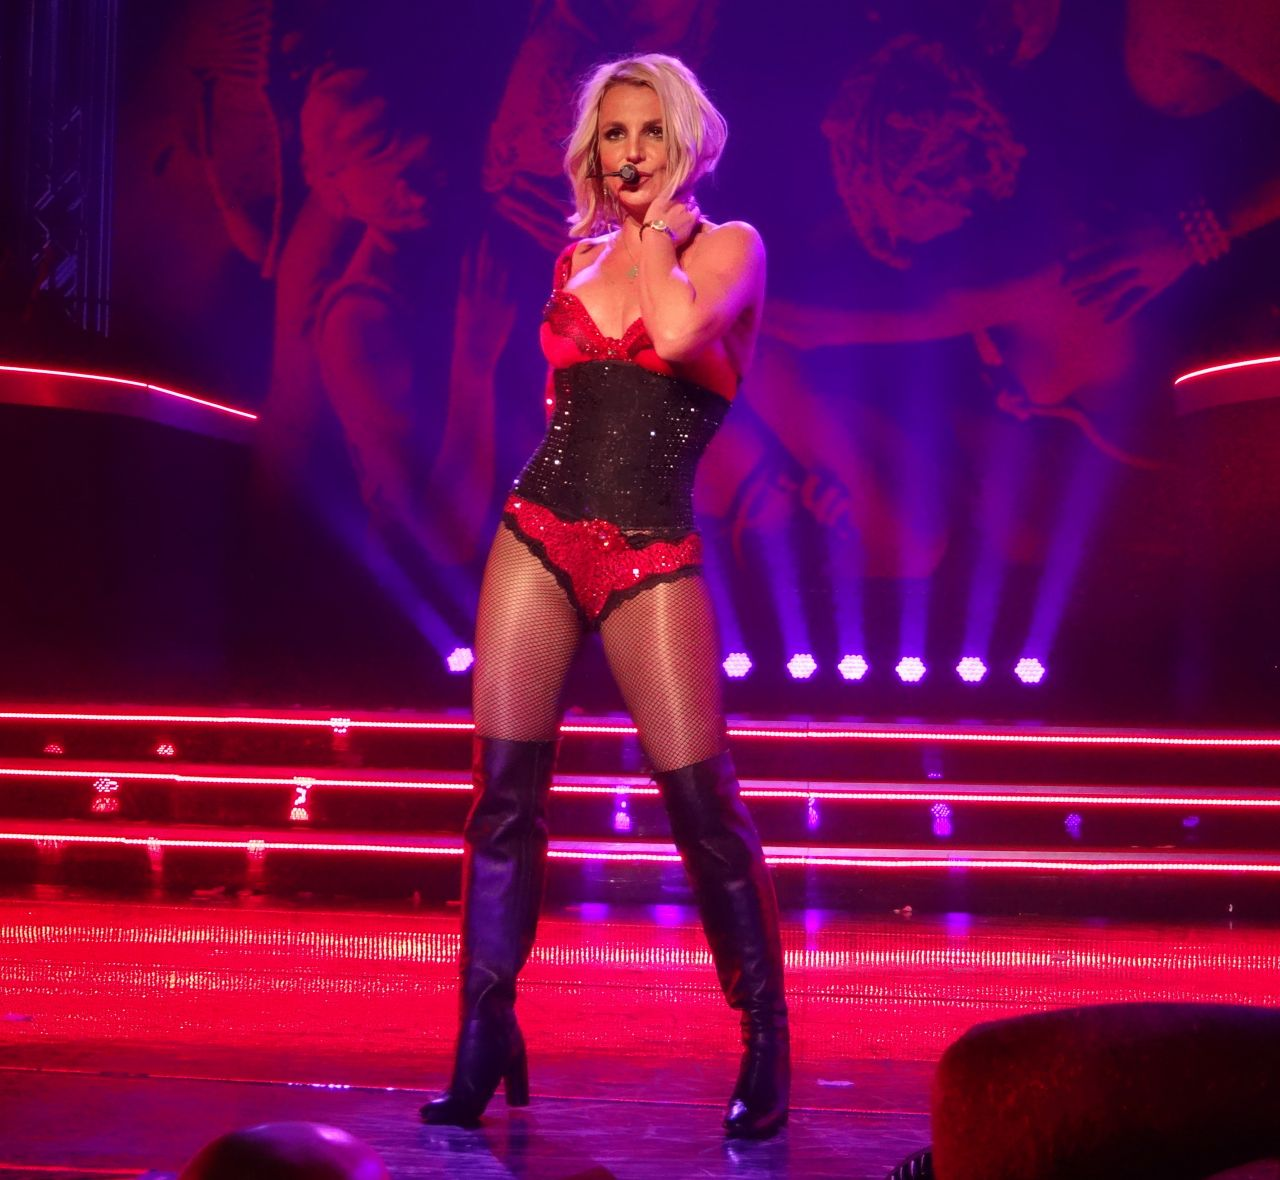 Where Is Britney Spears Performing In Vegas